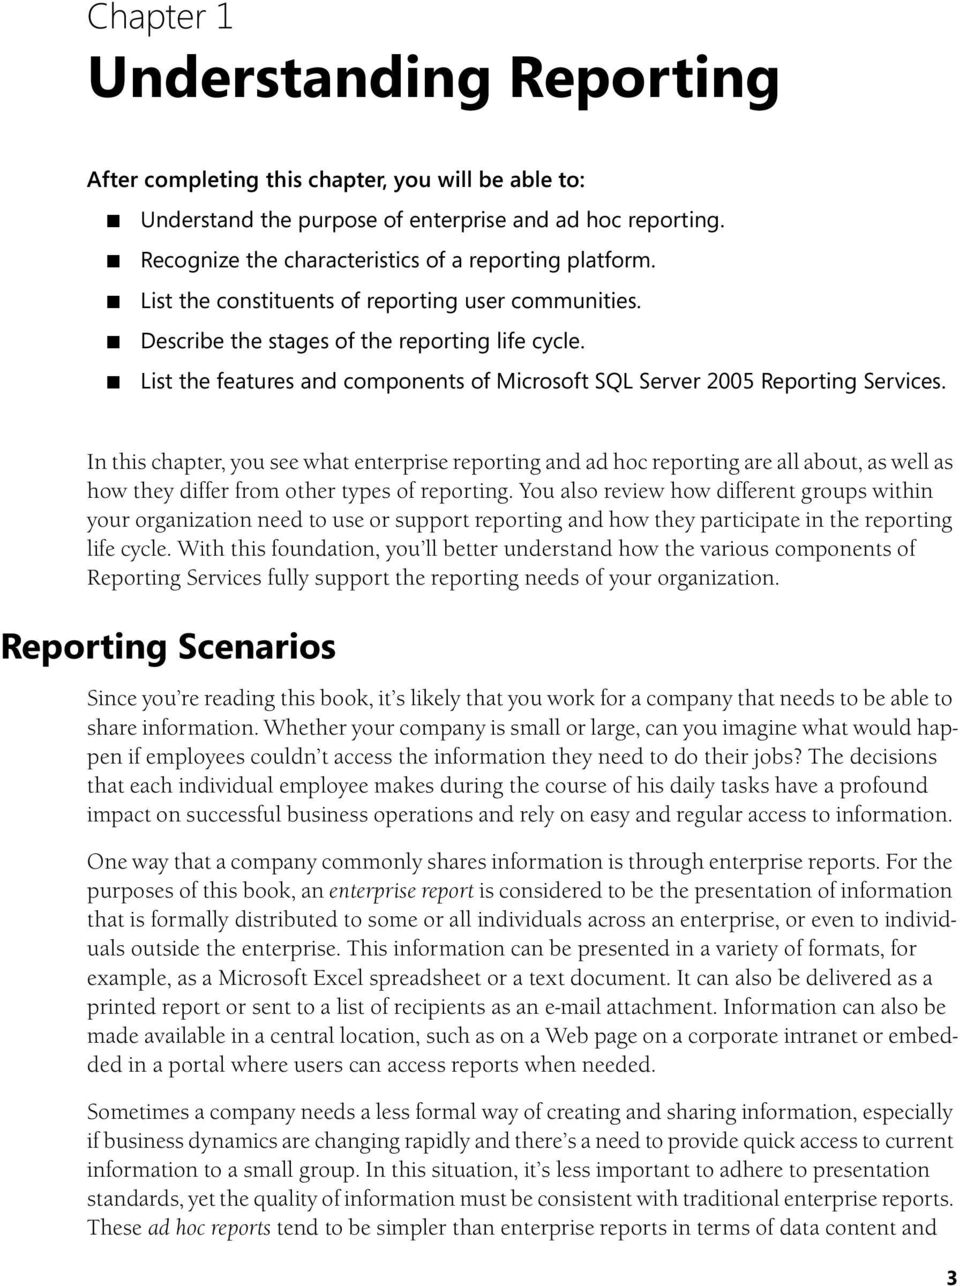 In this chapter, you see what enterprise reporting and ad hoc reporting are all about, as well as how they differ from other types of reporting.